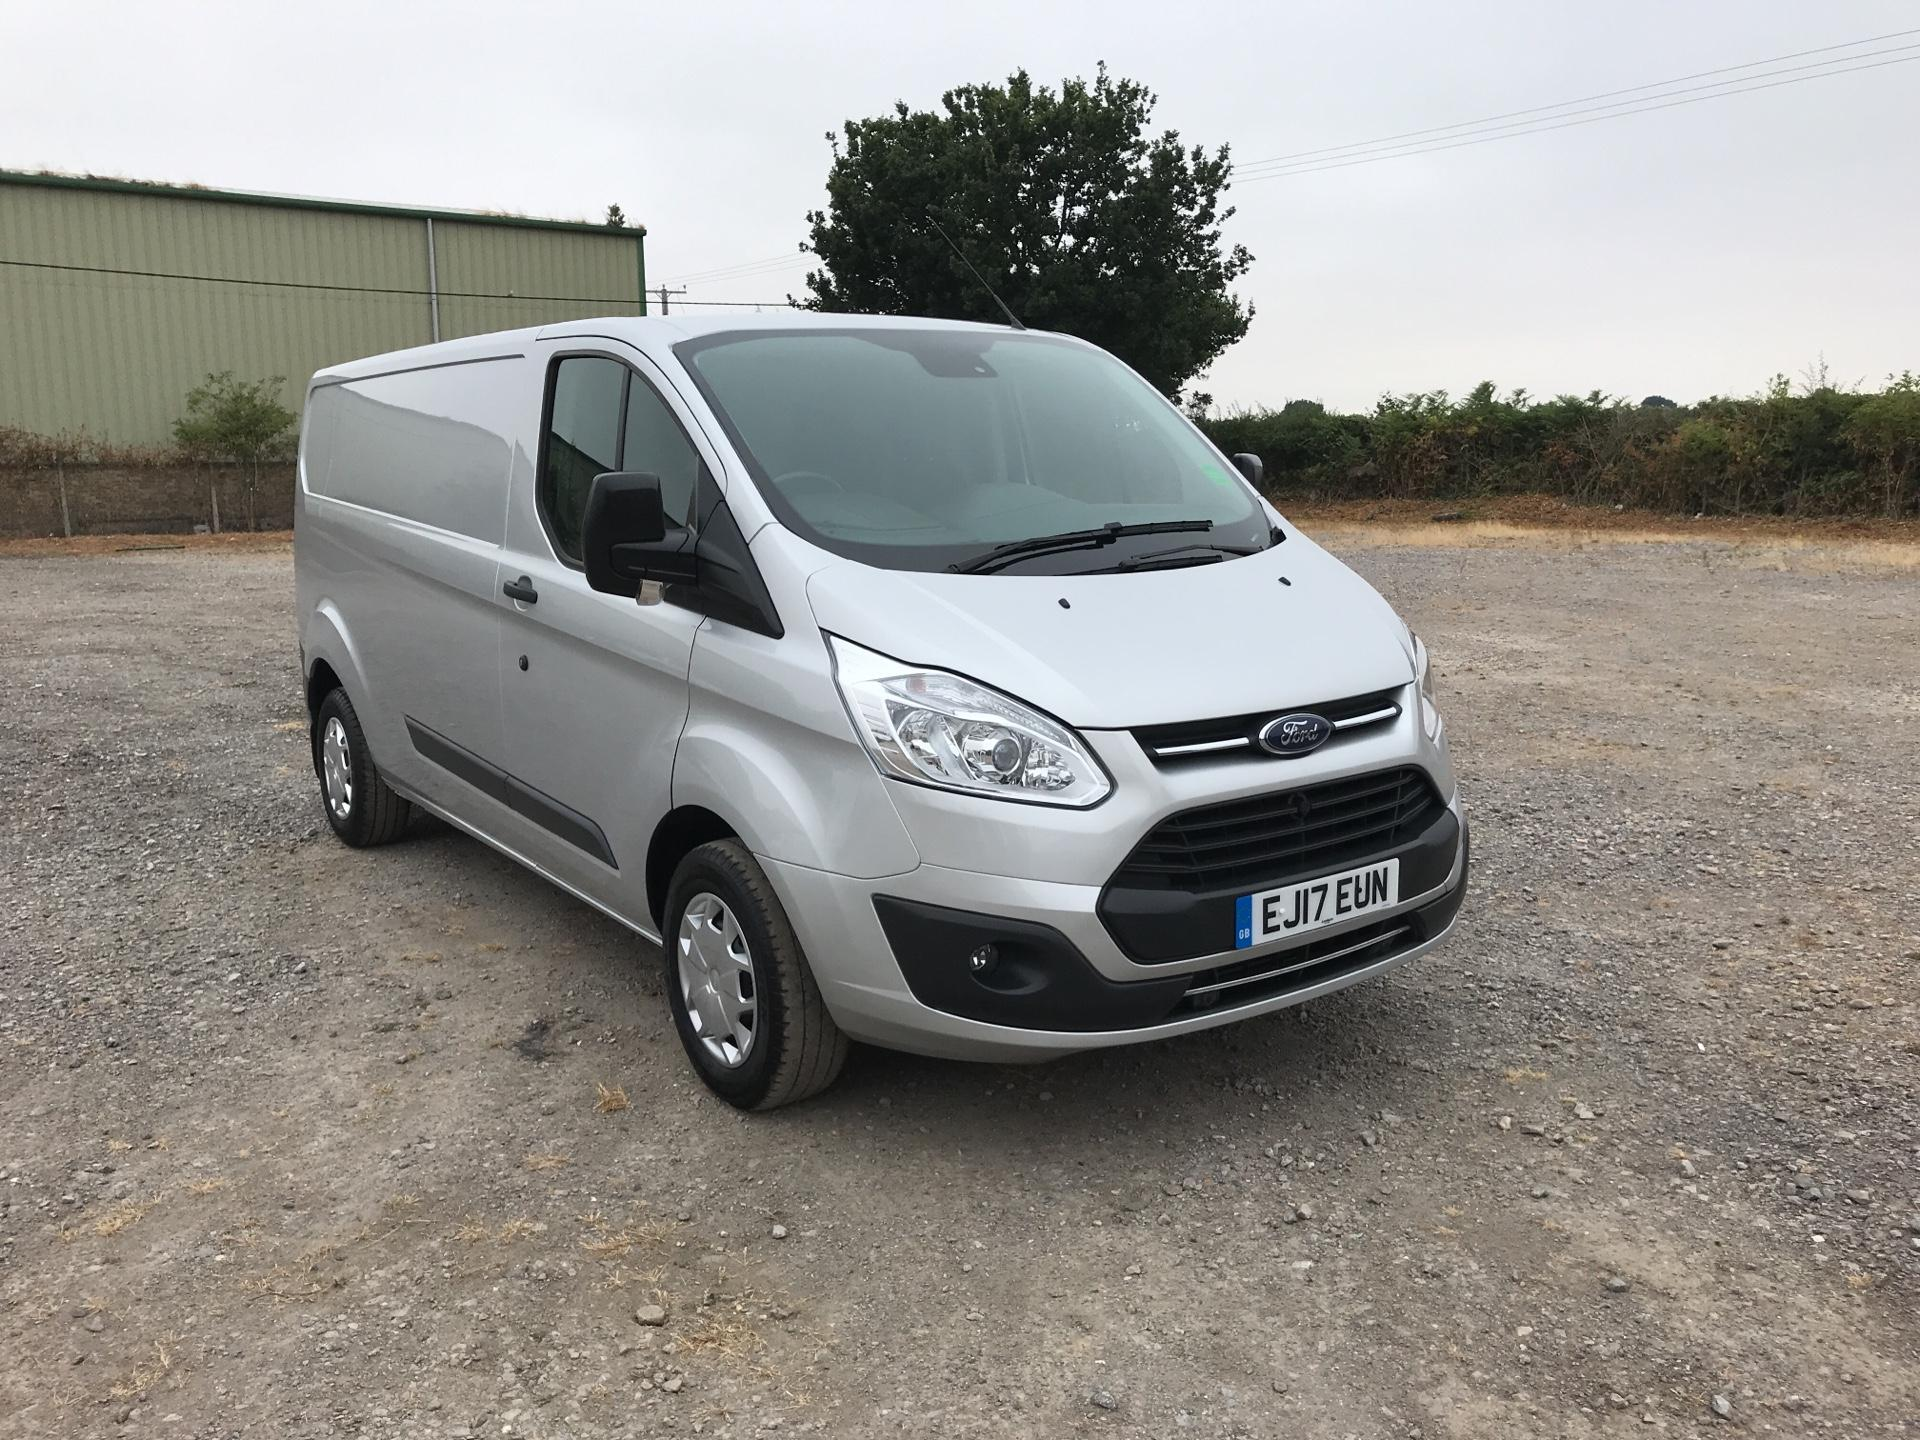 2017 Ford Transit Custom 2.0 105Ps Low Roof Trend Euro 6 (EJ17EUN)